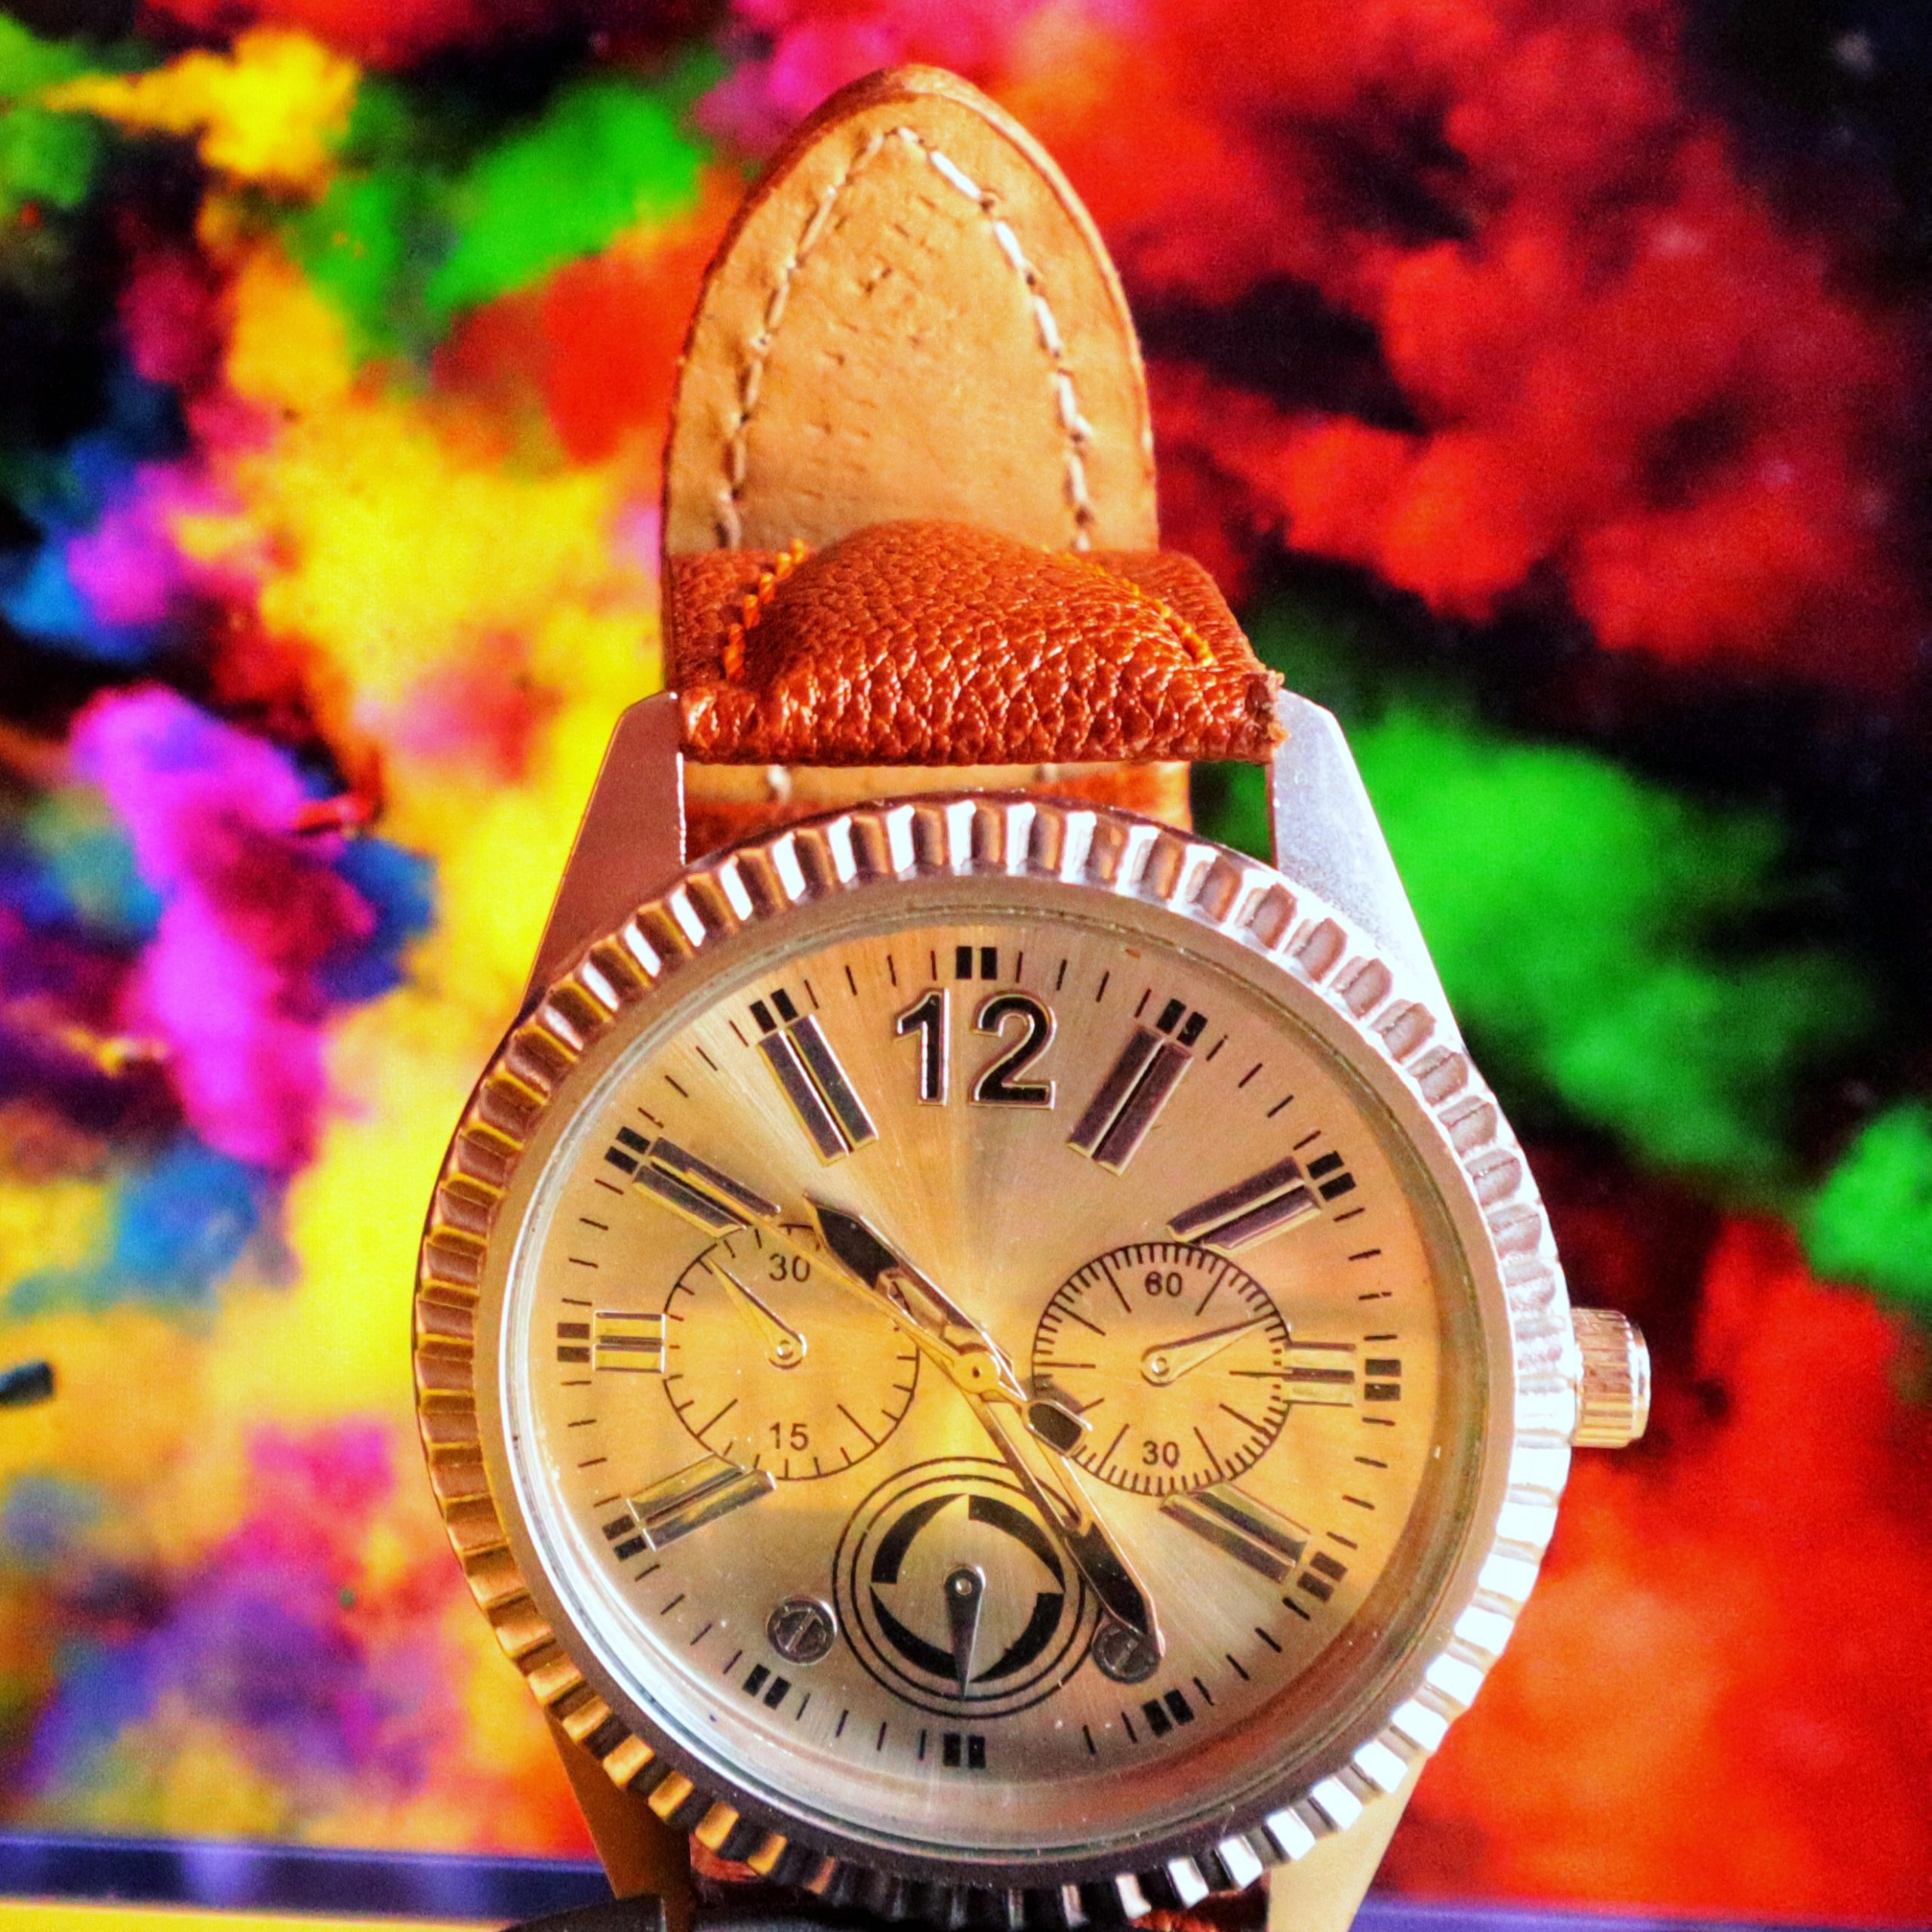 A picture of a watch foe advertisement.